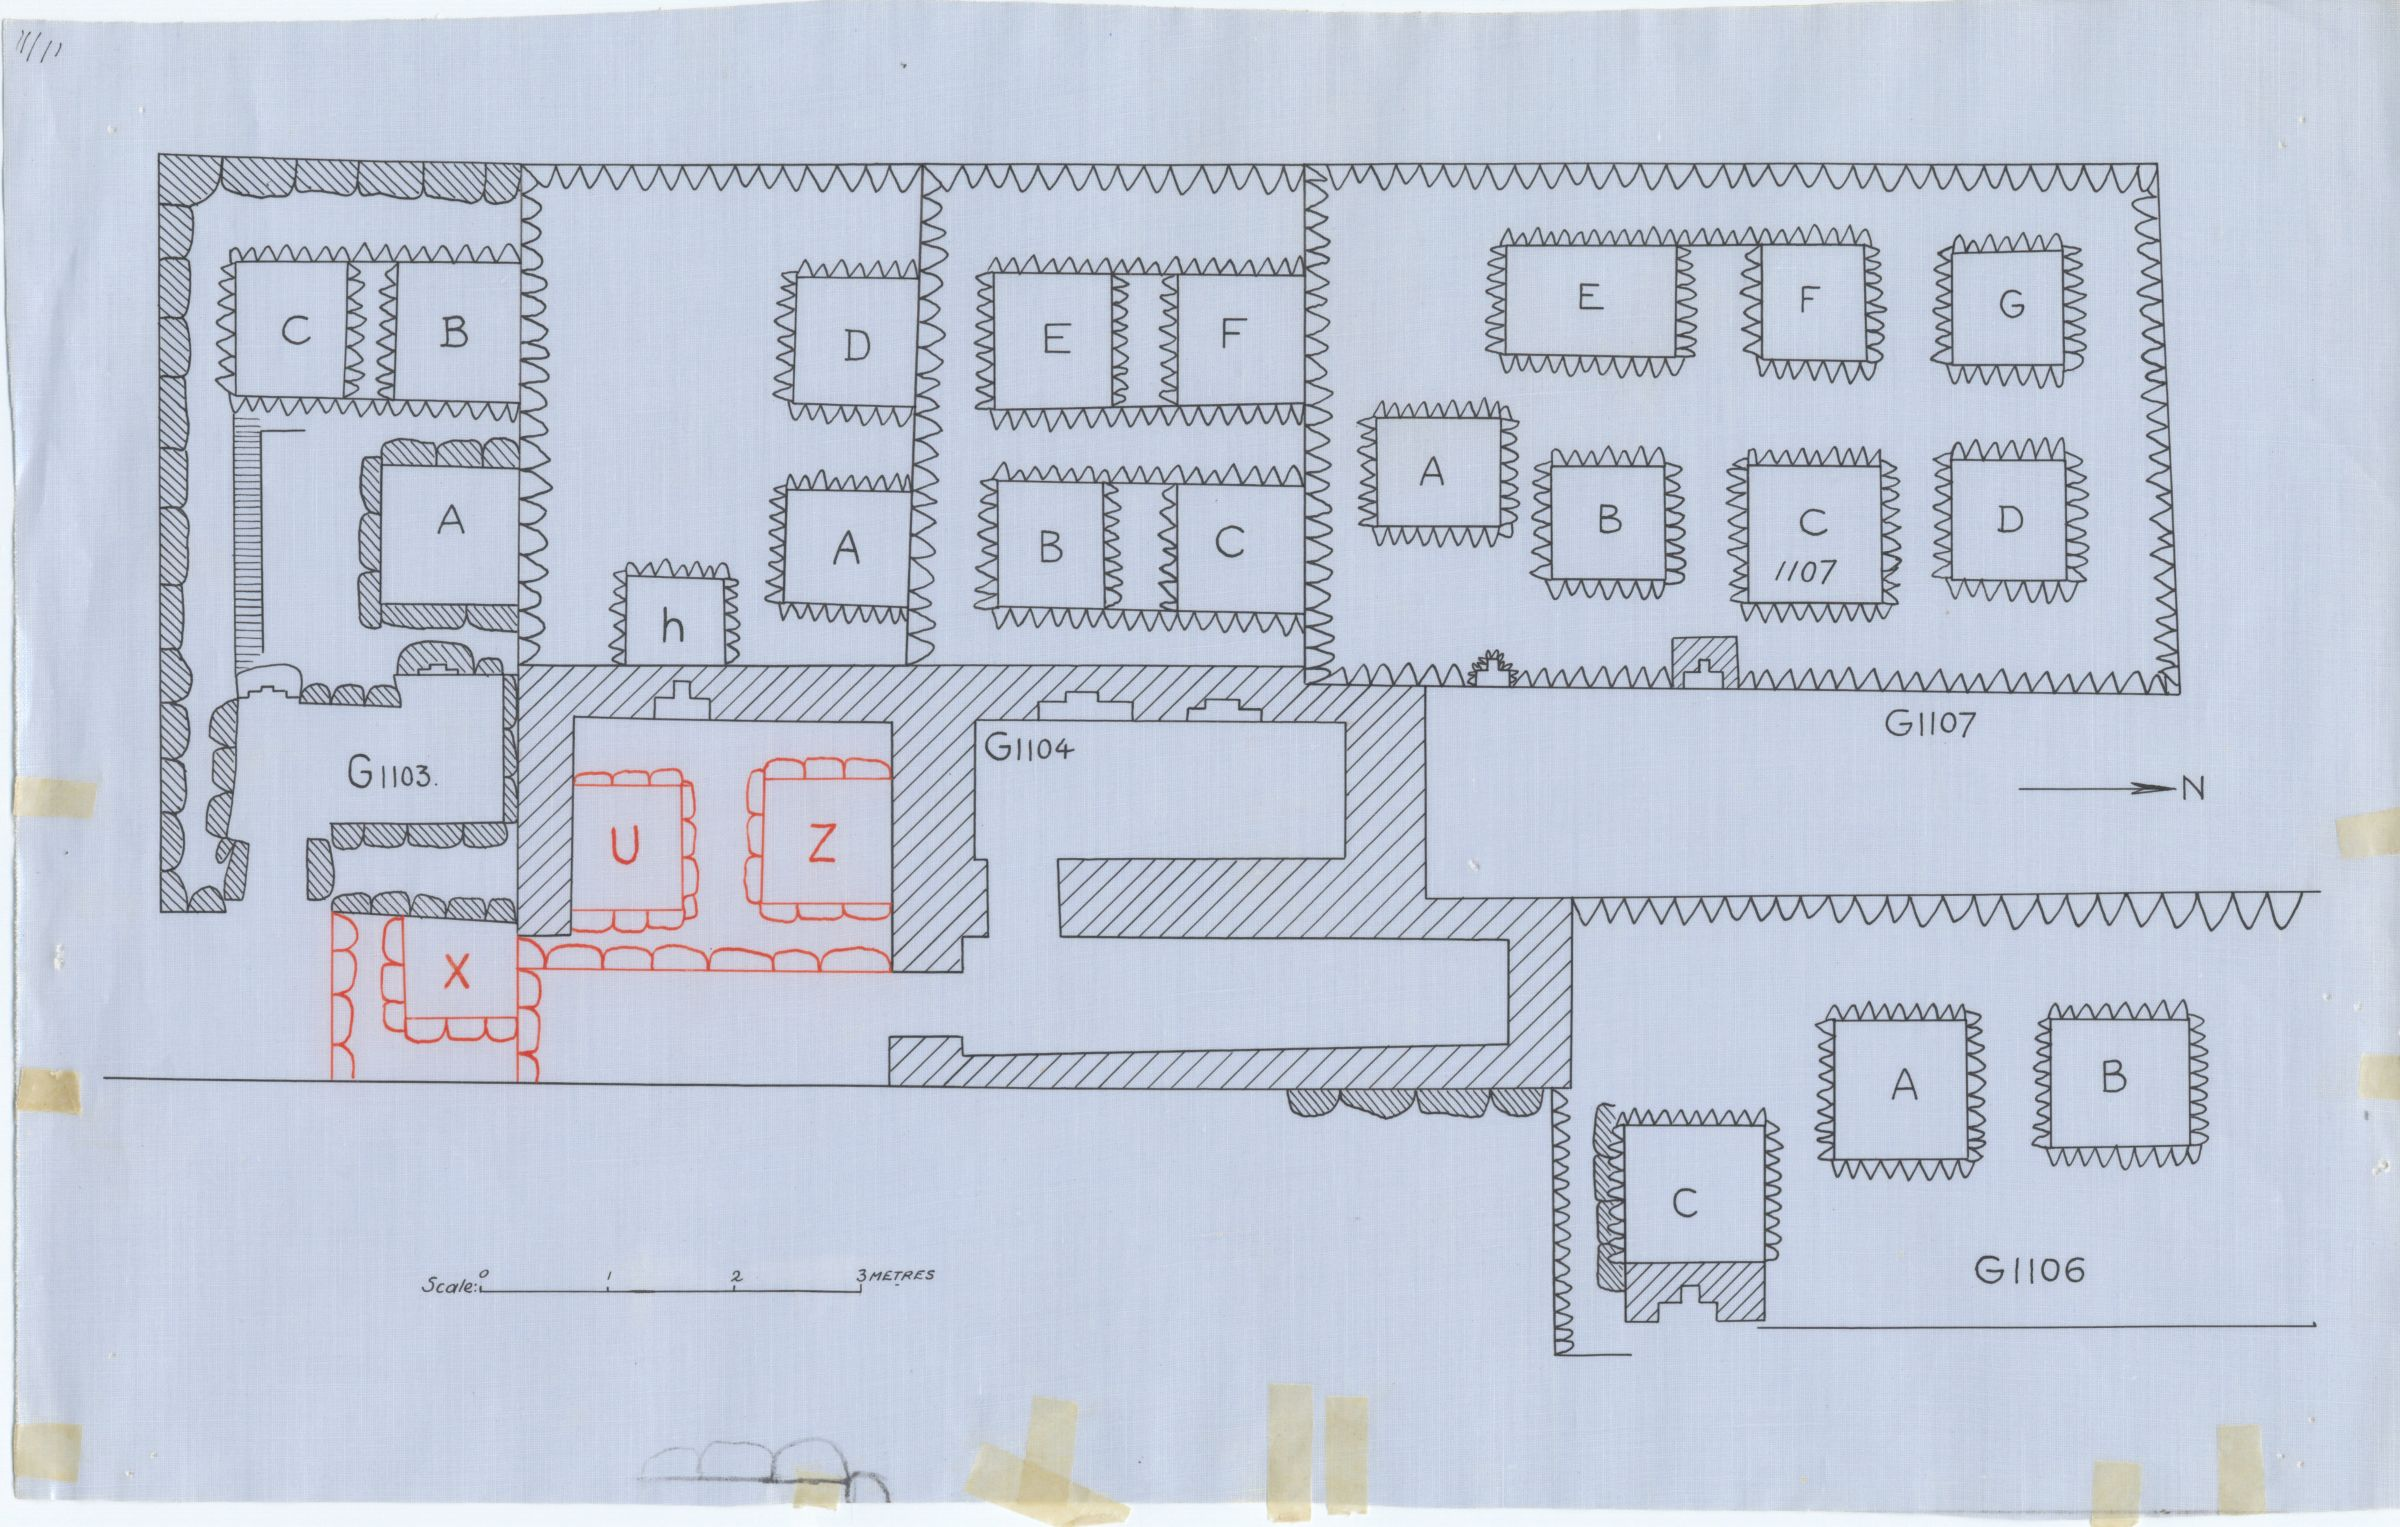 Maps and plans: Plan of G 1103, G 1104+1105, G 1106, G 1107